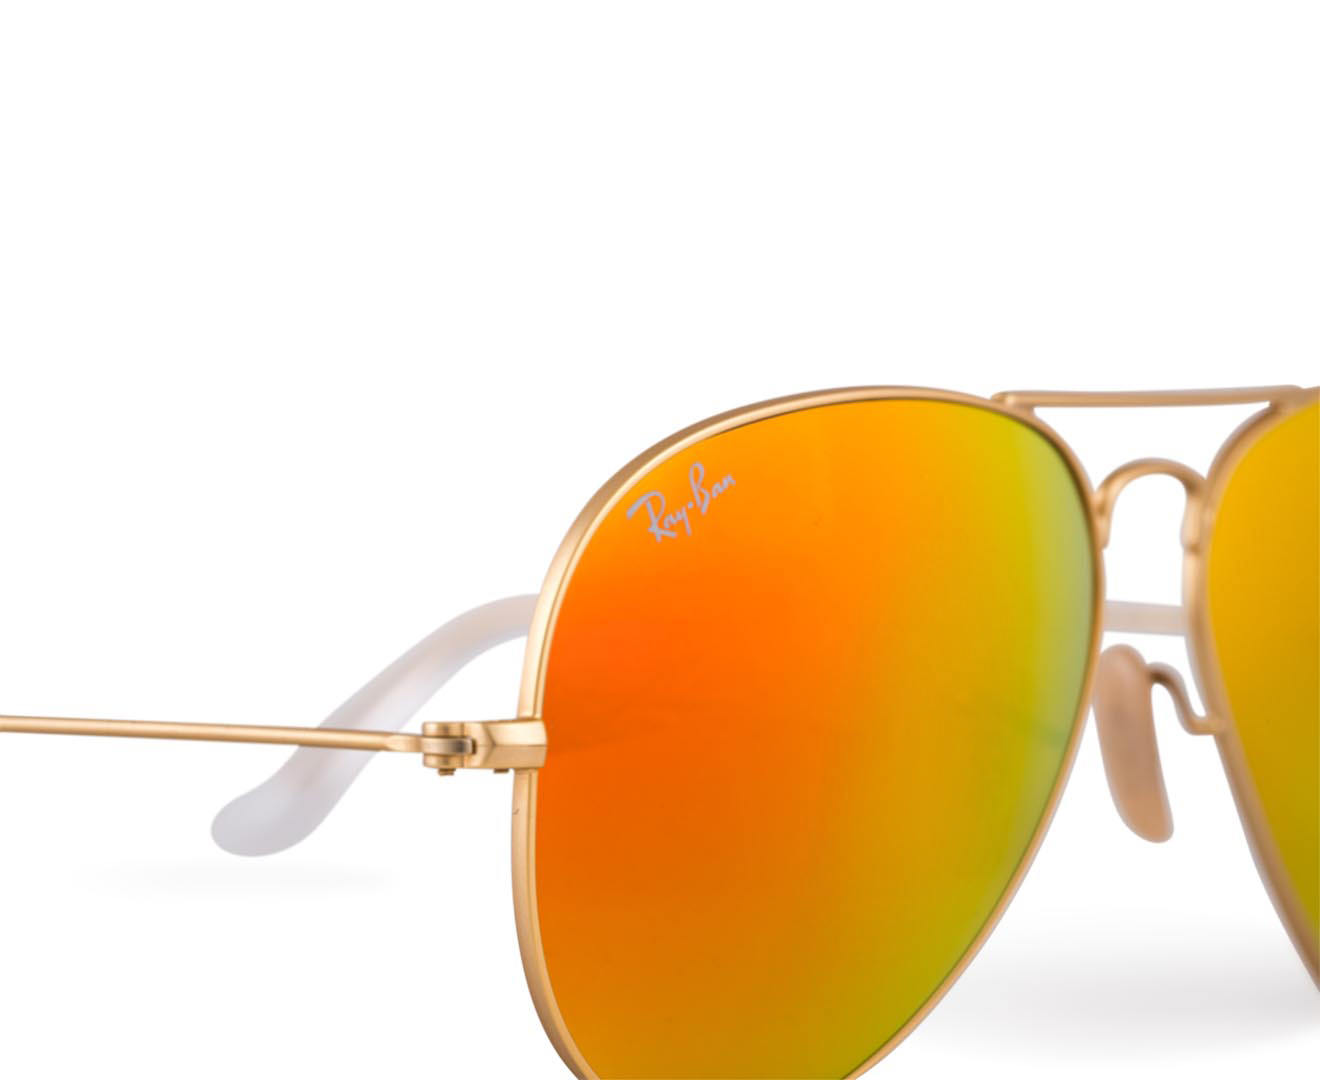 Ray-Ban Aviator RB3025-112 /69-58 Sunglasses - Starburst Gold